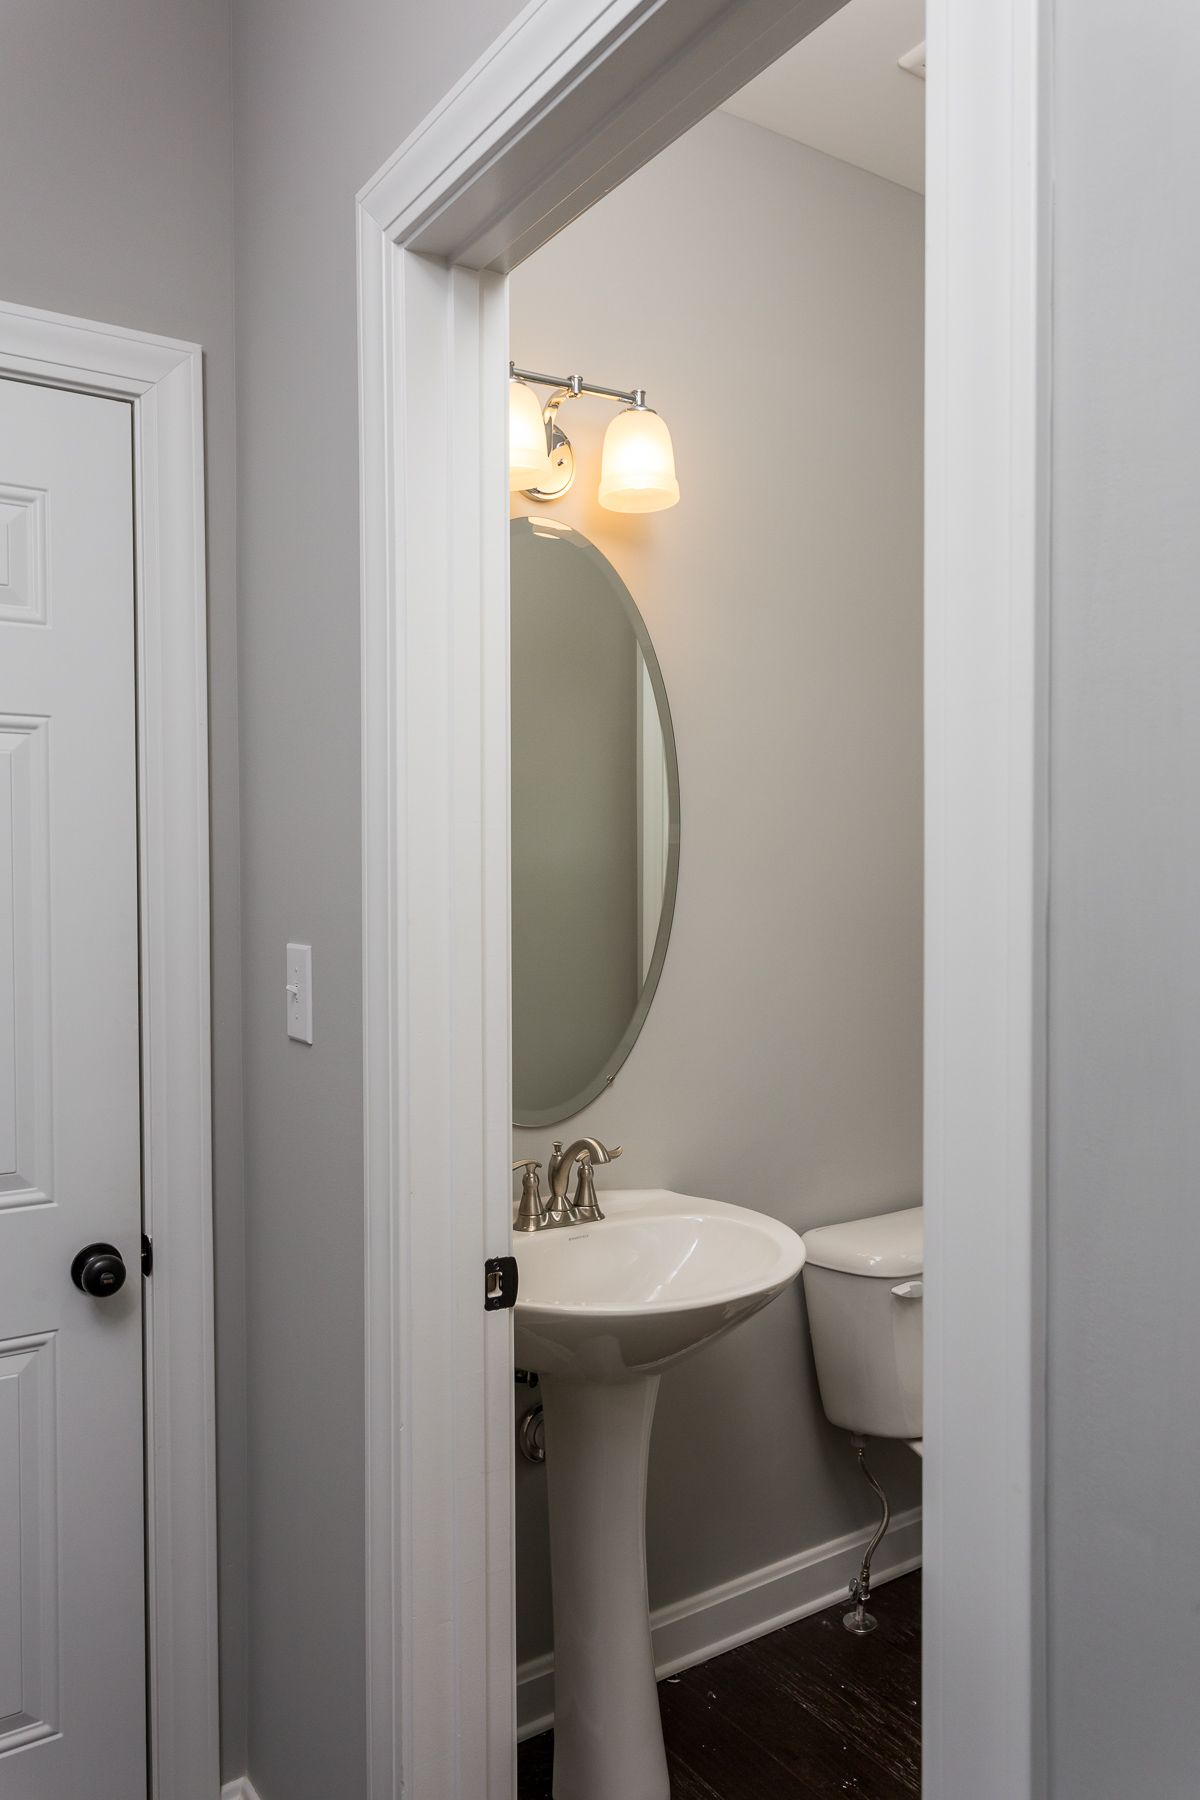 Bathroom featured in The Hamilton By Elite Built Homes LLC in Louisville, KY